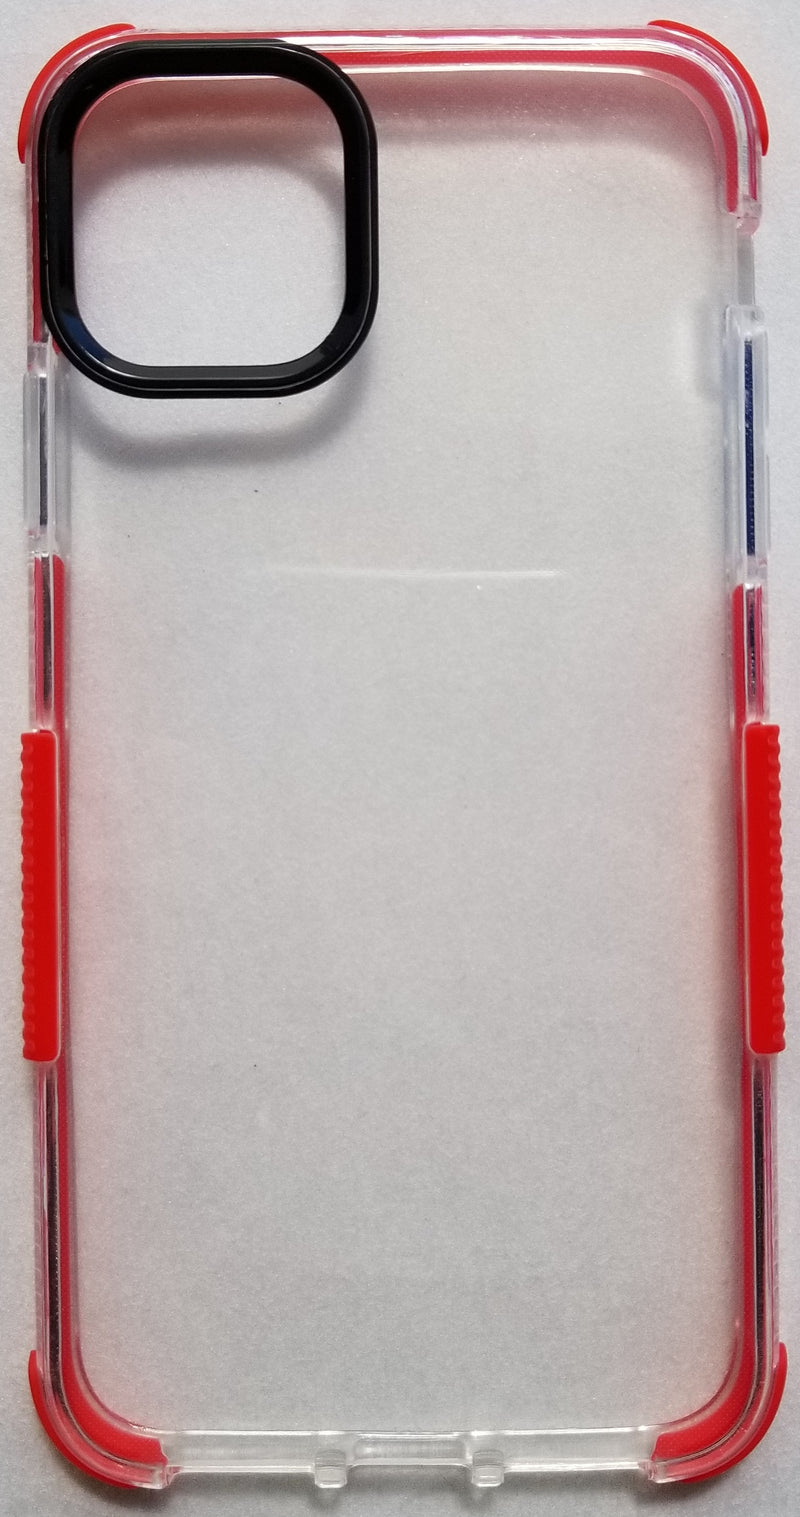 Inventuv Dual Layer Armor Case for iPhone 11 Pro